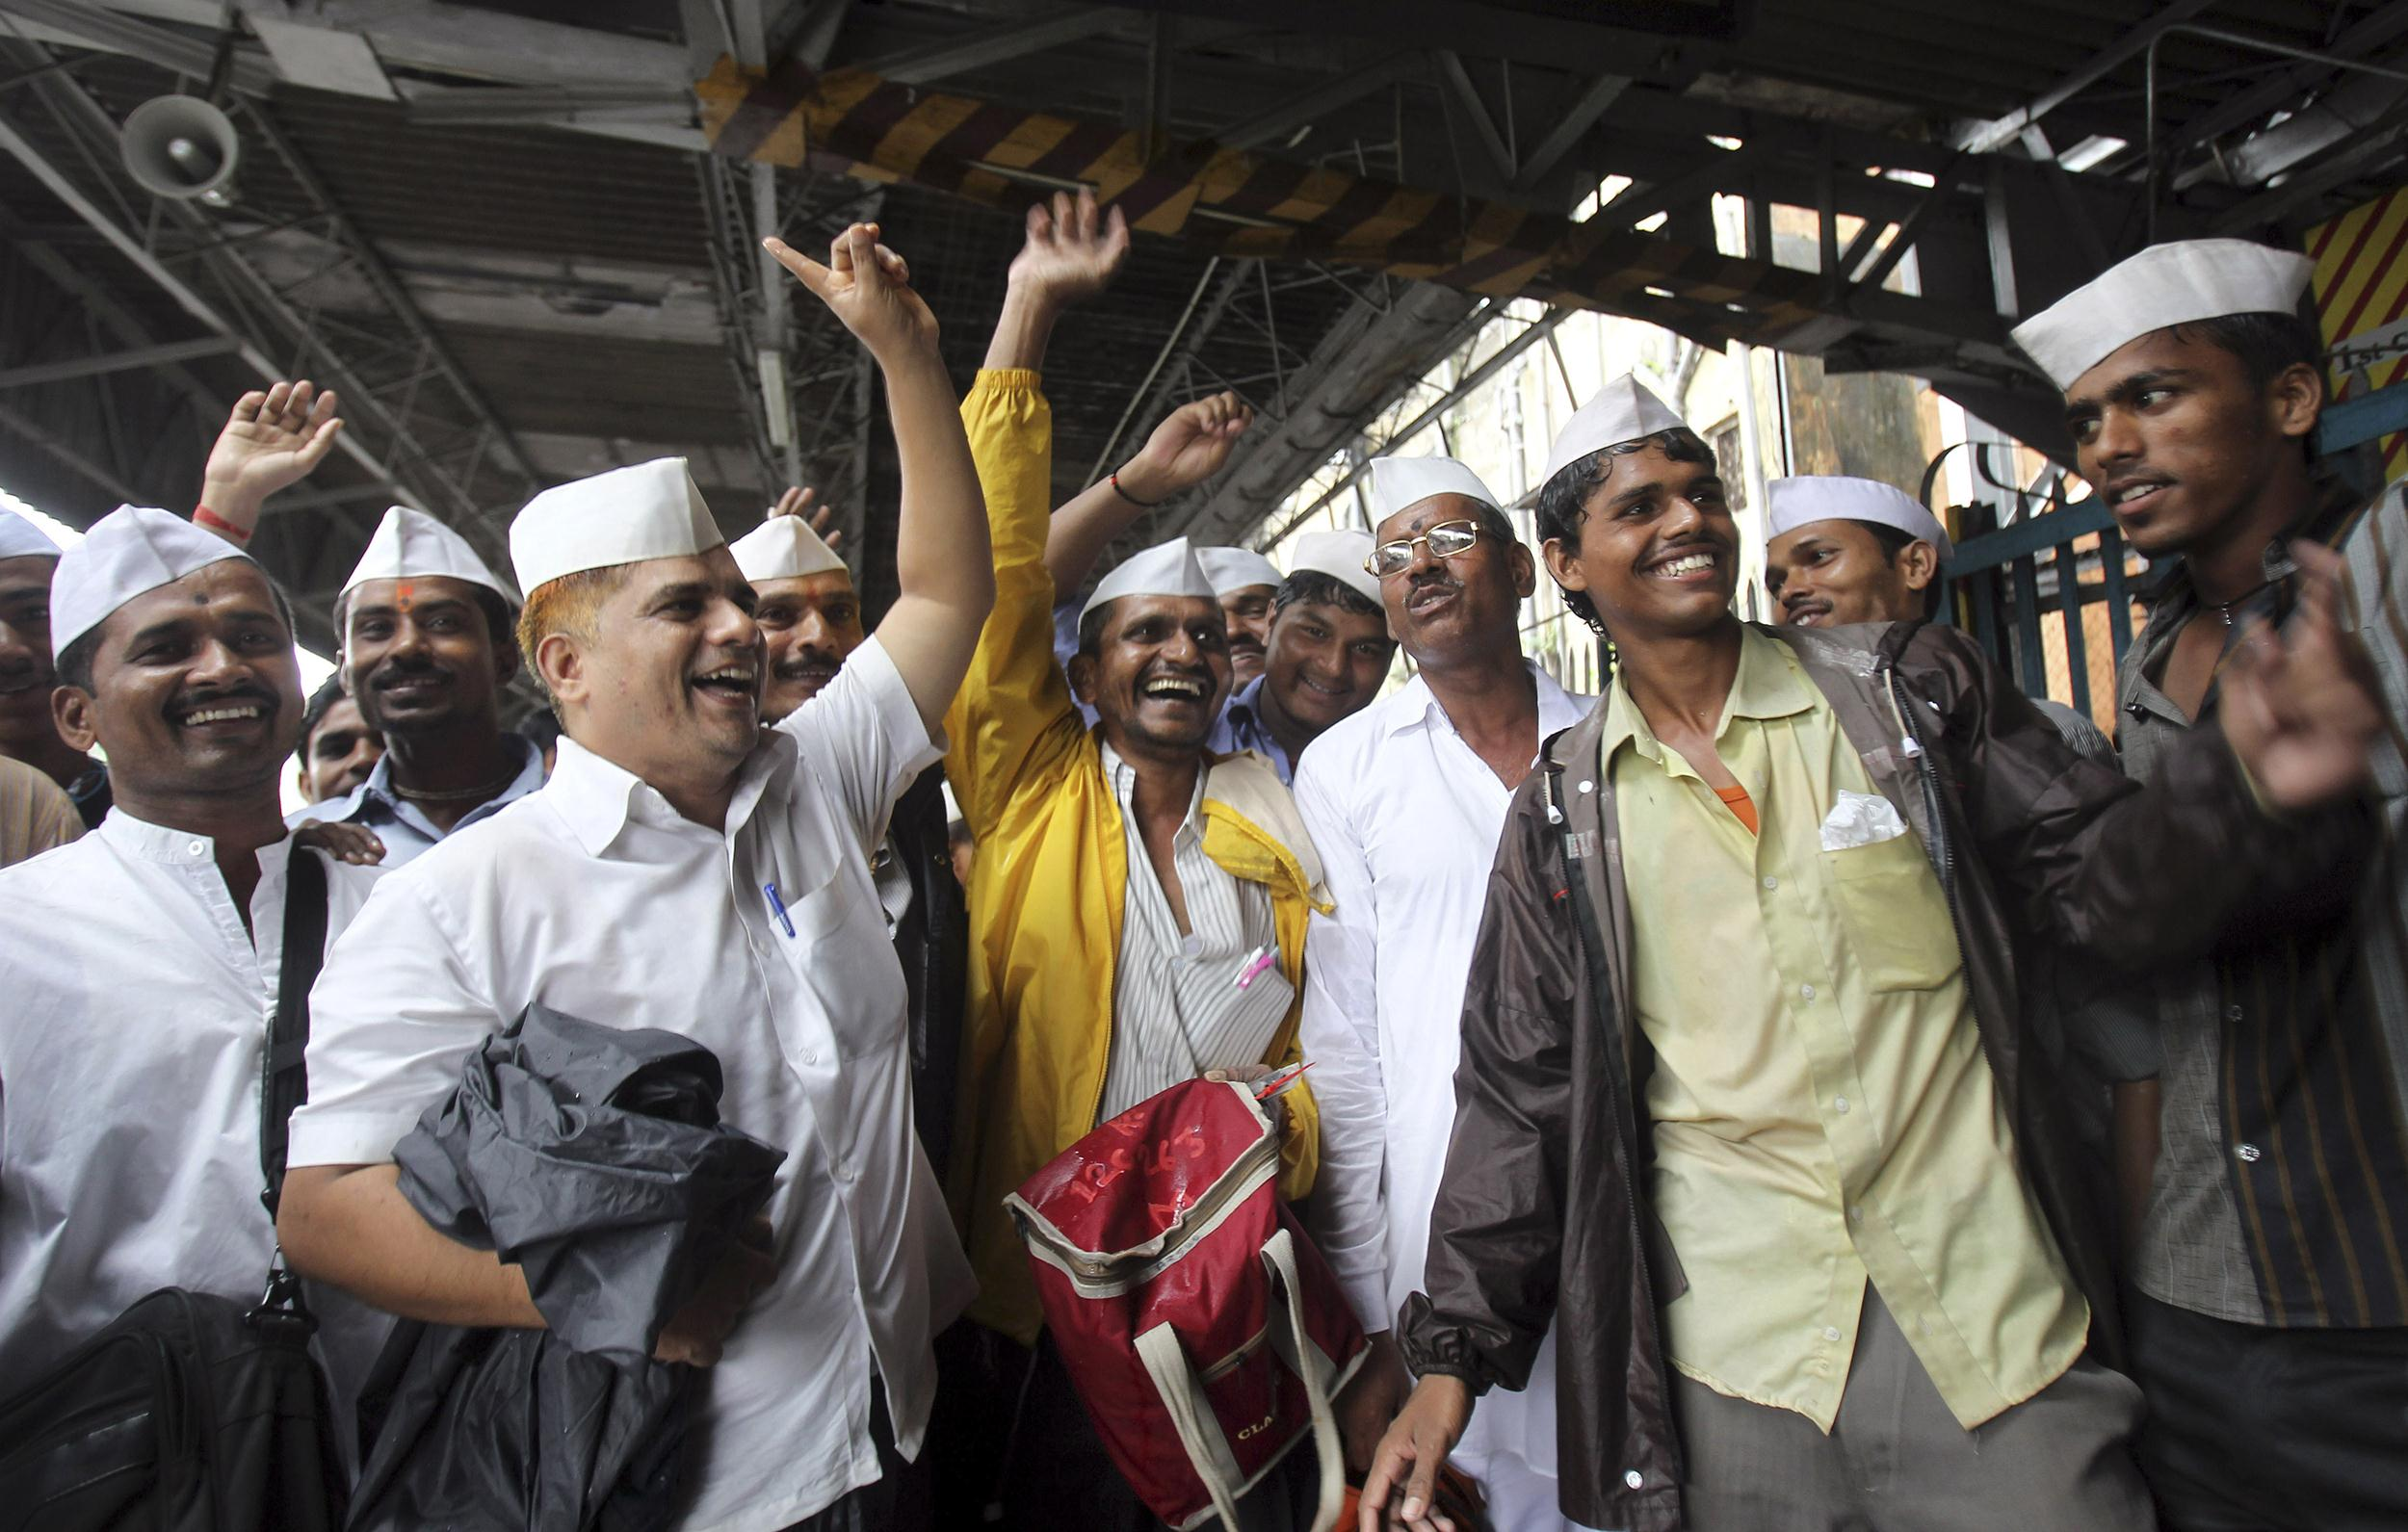 Image: Dabbawalas, or lunchbox delivery men, celebrate the birth of the Prince of Cambridge, the son of Britain's Prince William and Kate, Duchess of Cambridge, at a railway platform in Mumbai, India, on July 23, 2013